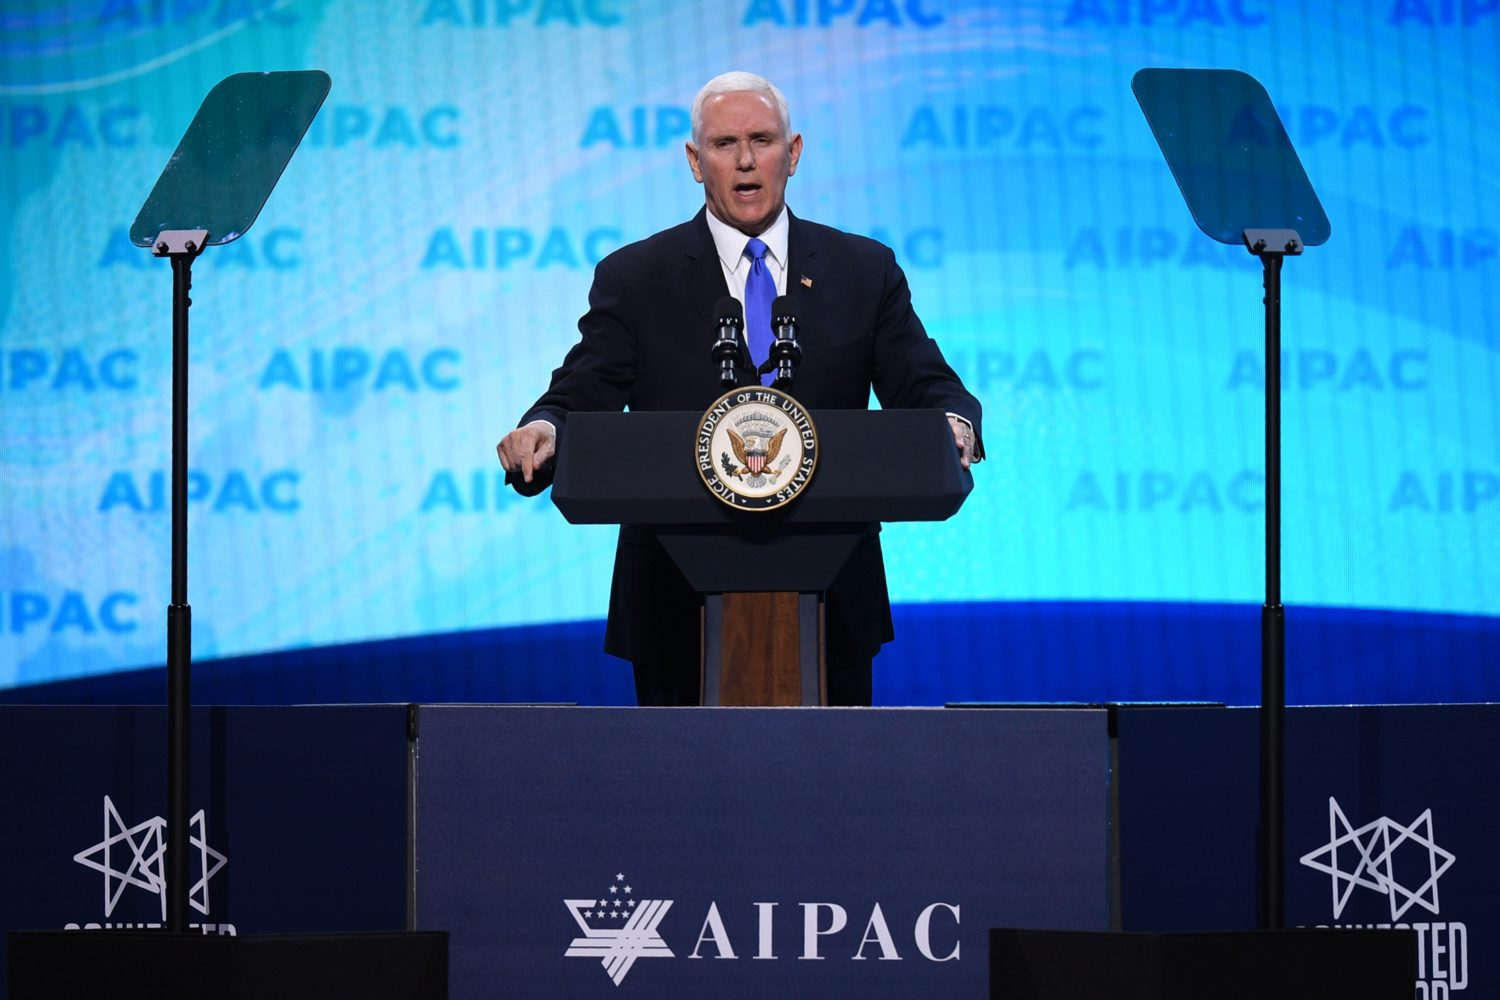 US Vice President Mike Pence speaks during the AIPAC annual meeting in Washington, DC, on March 25, 2019. (JIM WATSON/AFP/Getty Images)